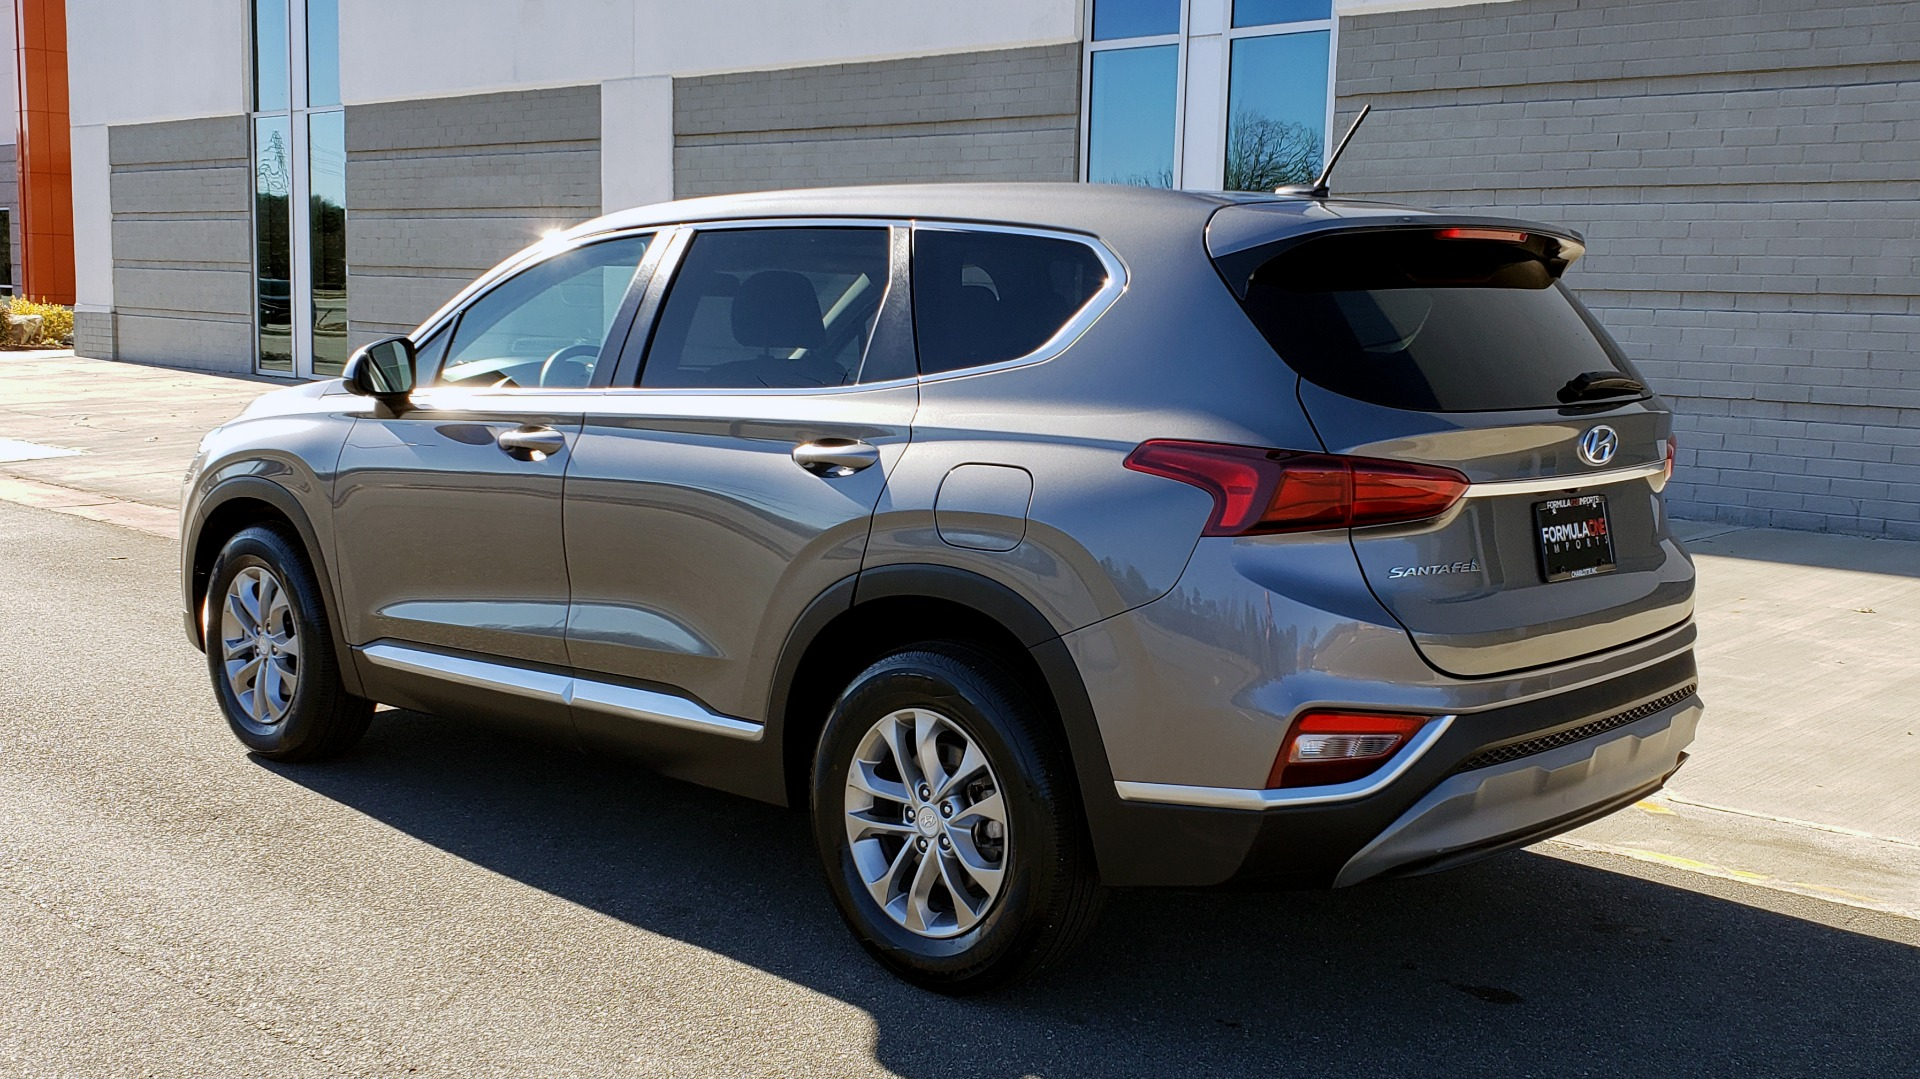 Used 2019 Hyundai SANTA FE SE / 2.4L 4-CYL / 8-SPD AUTO / BLIND SPOT / LANE KEEP ASSIST for sale Sold at Formula Imports in Charlotte NC 28227 7